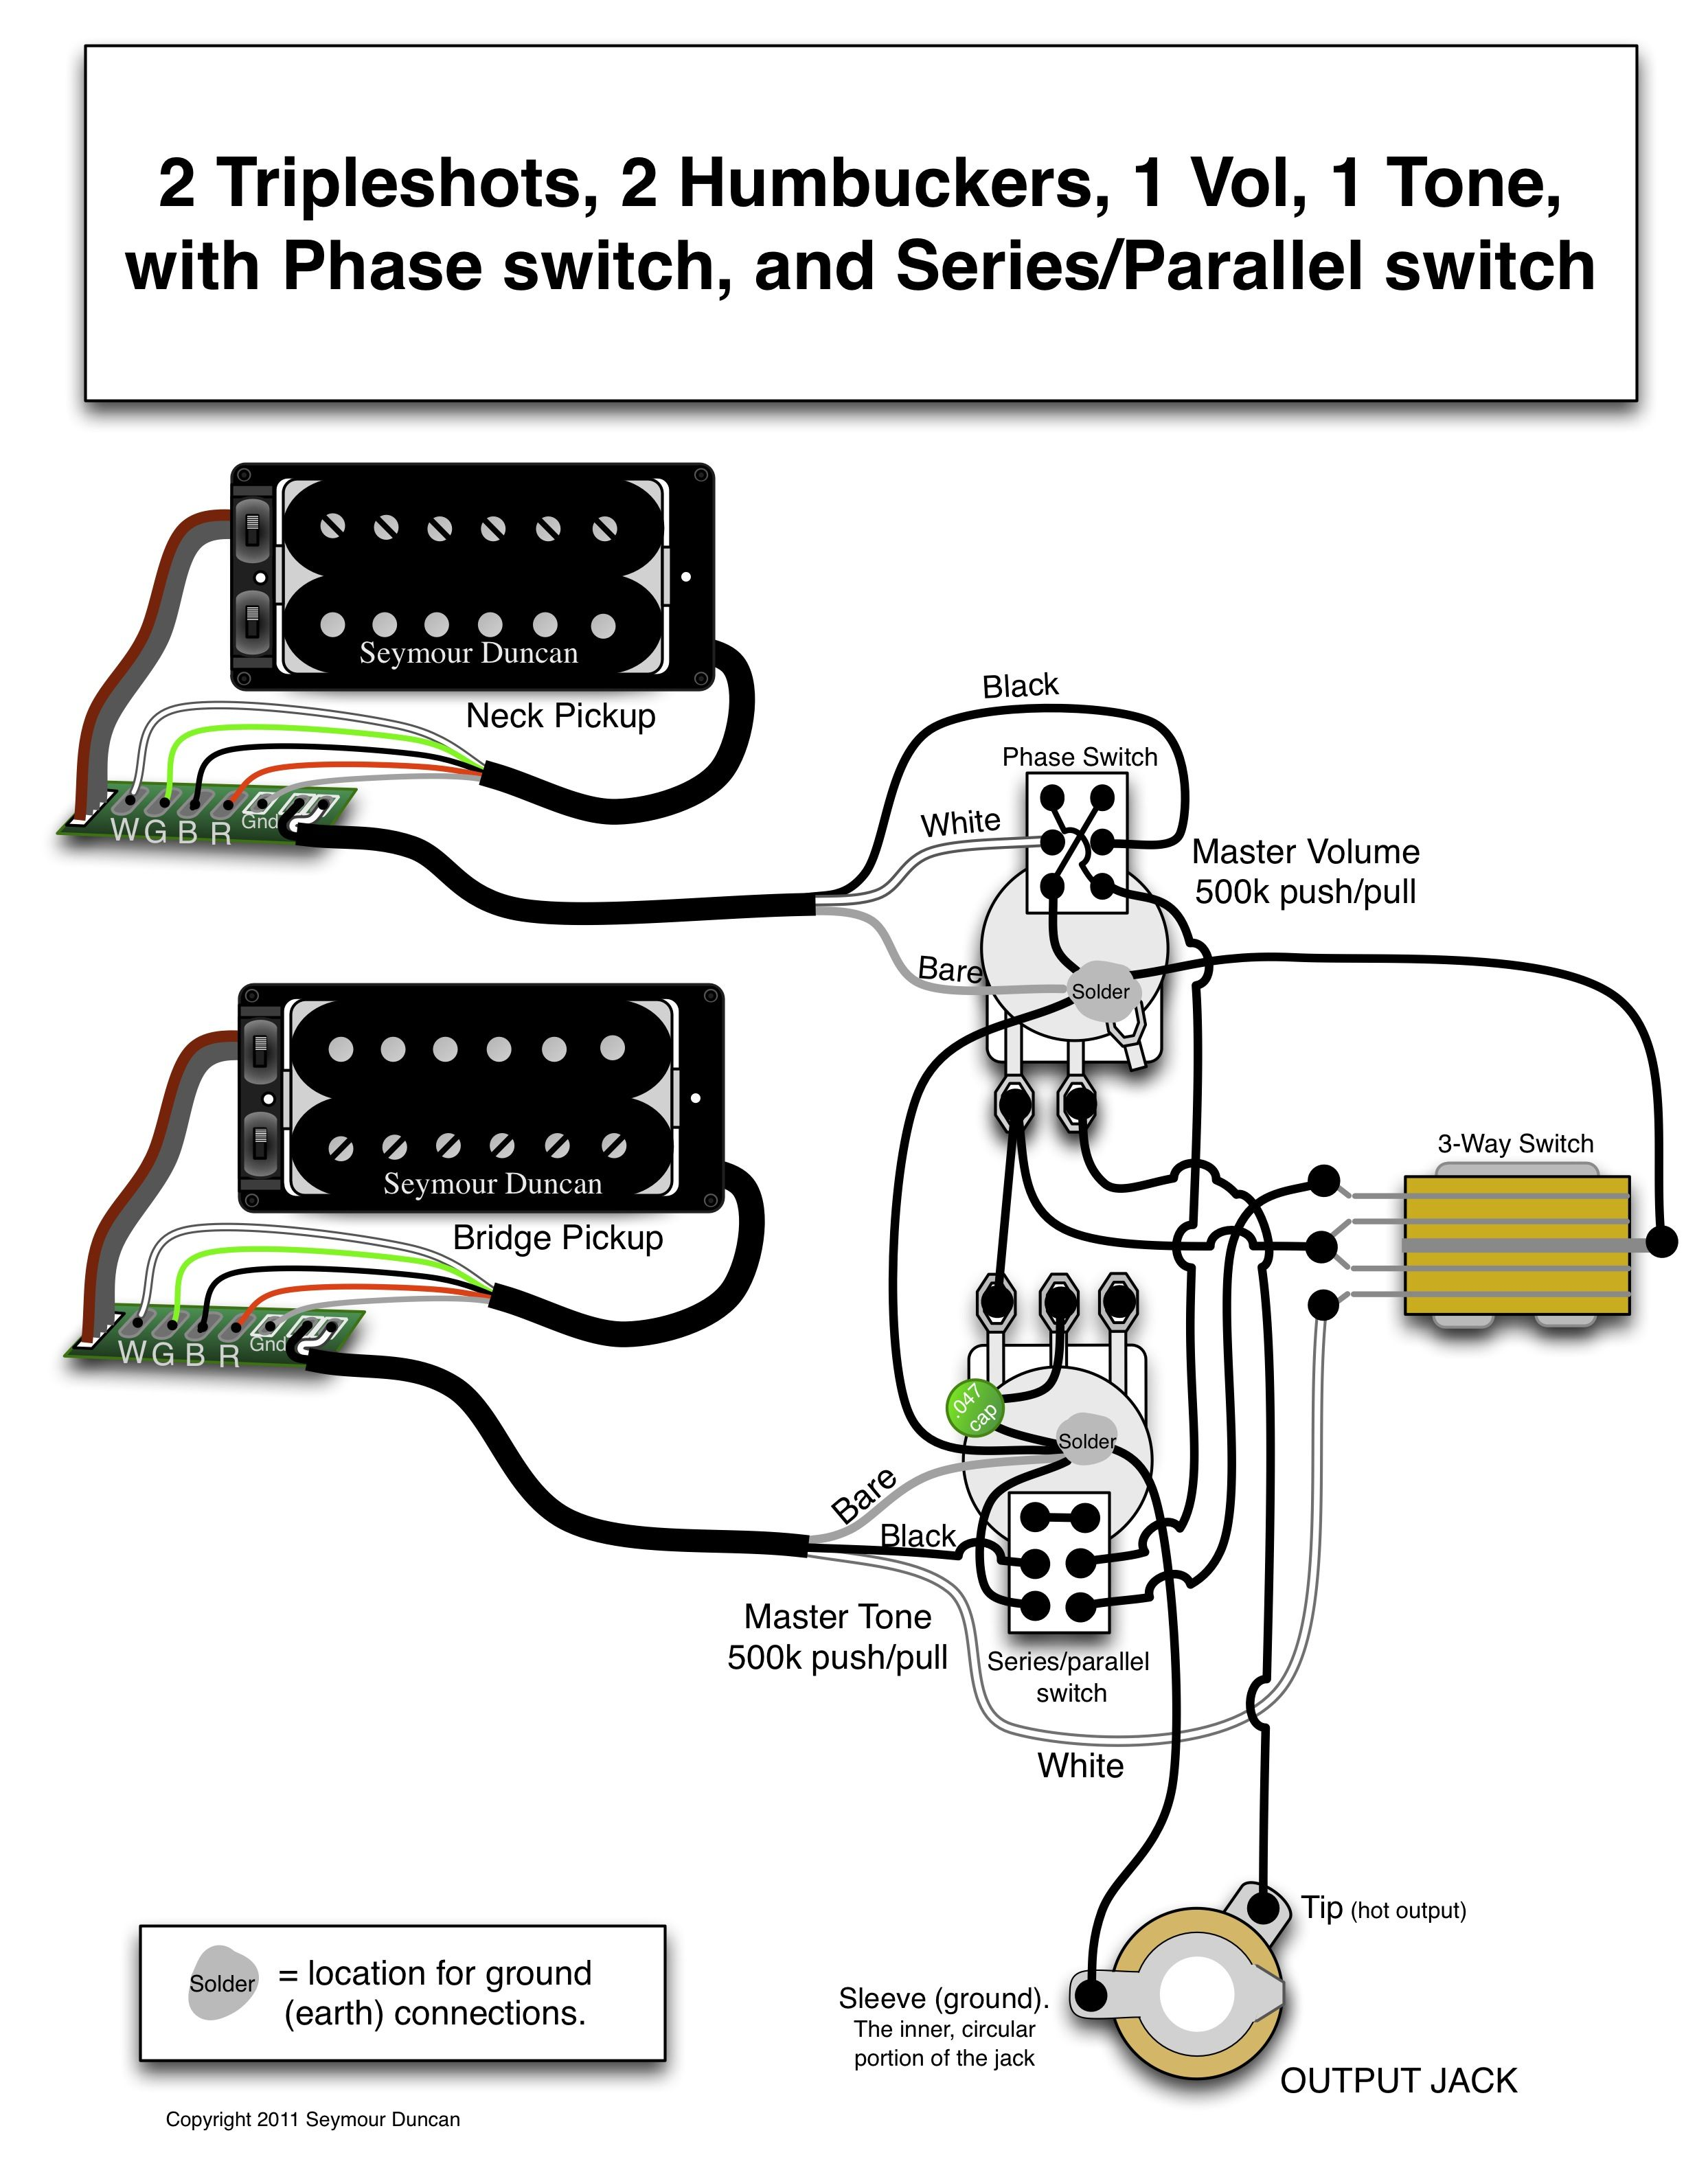 seymour duncan wiring diagram 2 triple shots 2 humbuckers 1 vol rh pinterest com Toggle Switch Wiring Diagram Push Button Switch Wiring Diagram